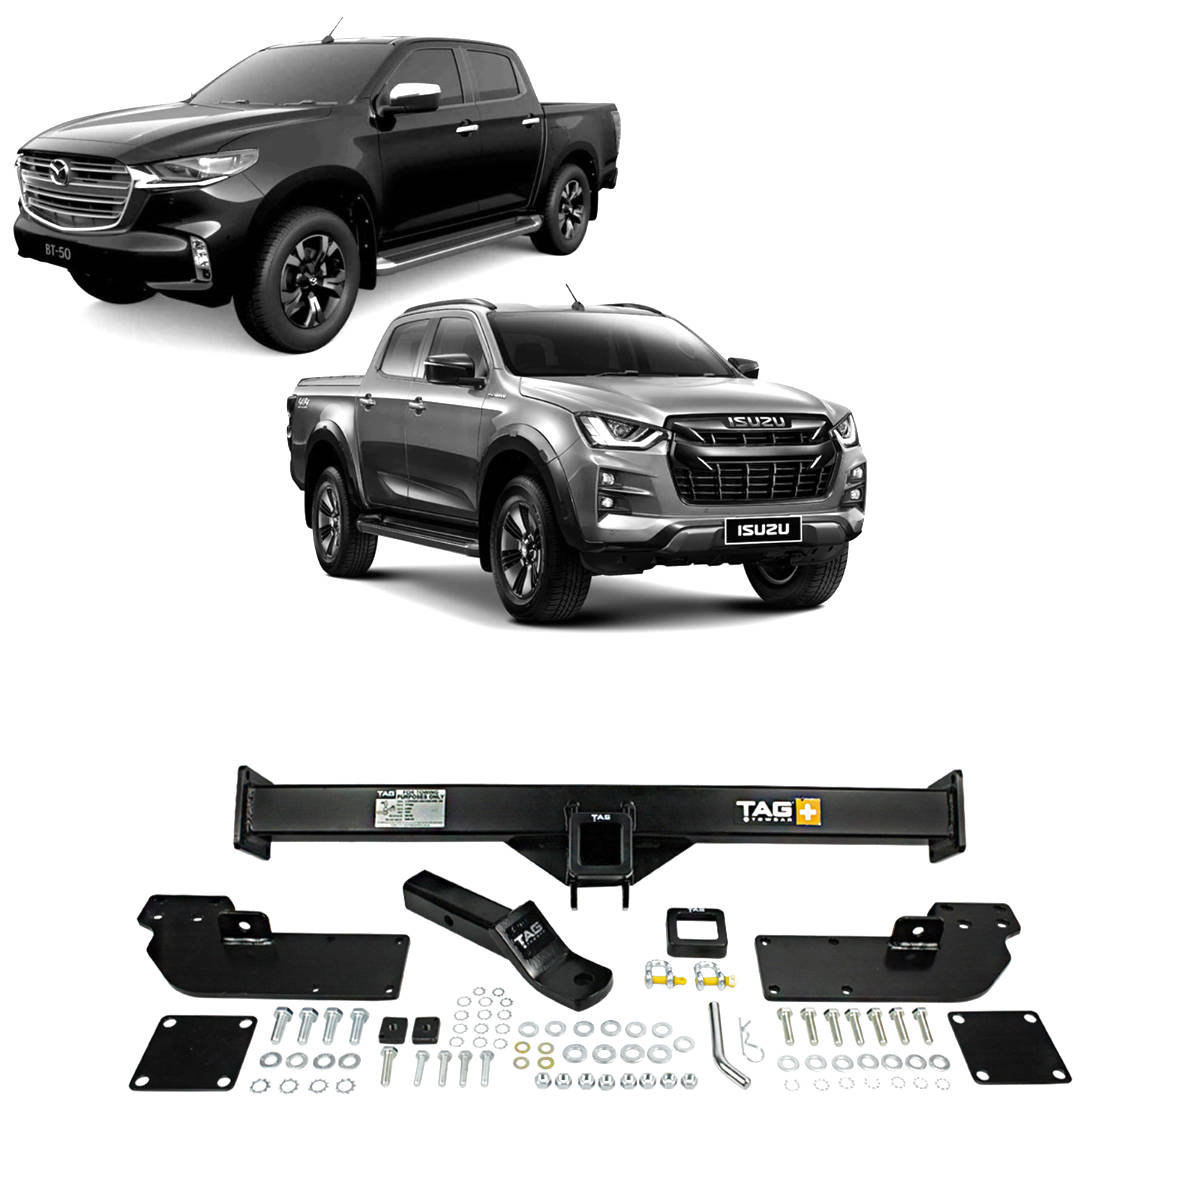 TAG Heavy Duty Towbar to suit Mazda BT-50 (08/2020 - on), Isuzu D-MAX (07/2020 - on)